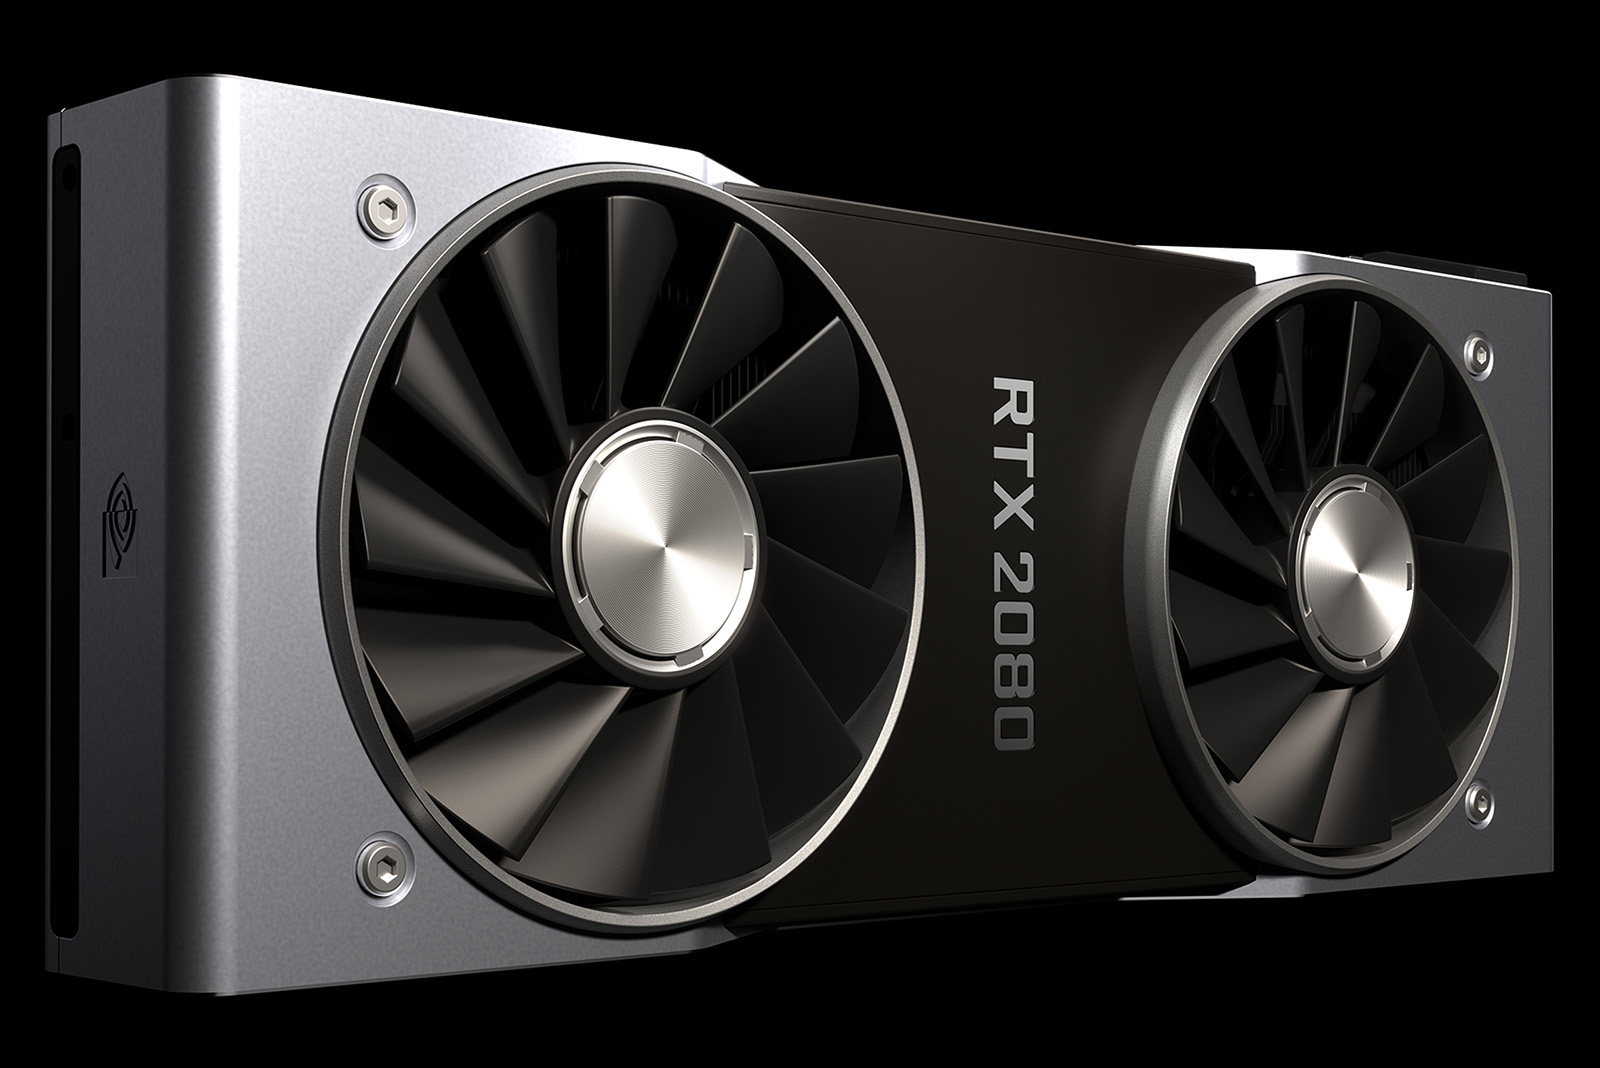 New video cards by Nvidia can displace ASIC equipment from the mining industry.